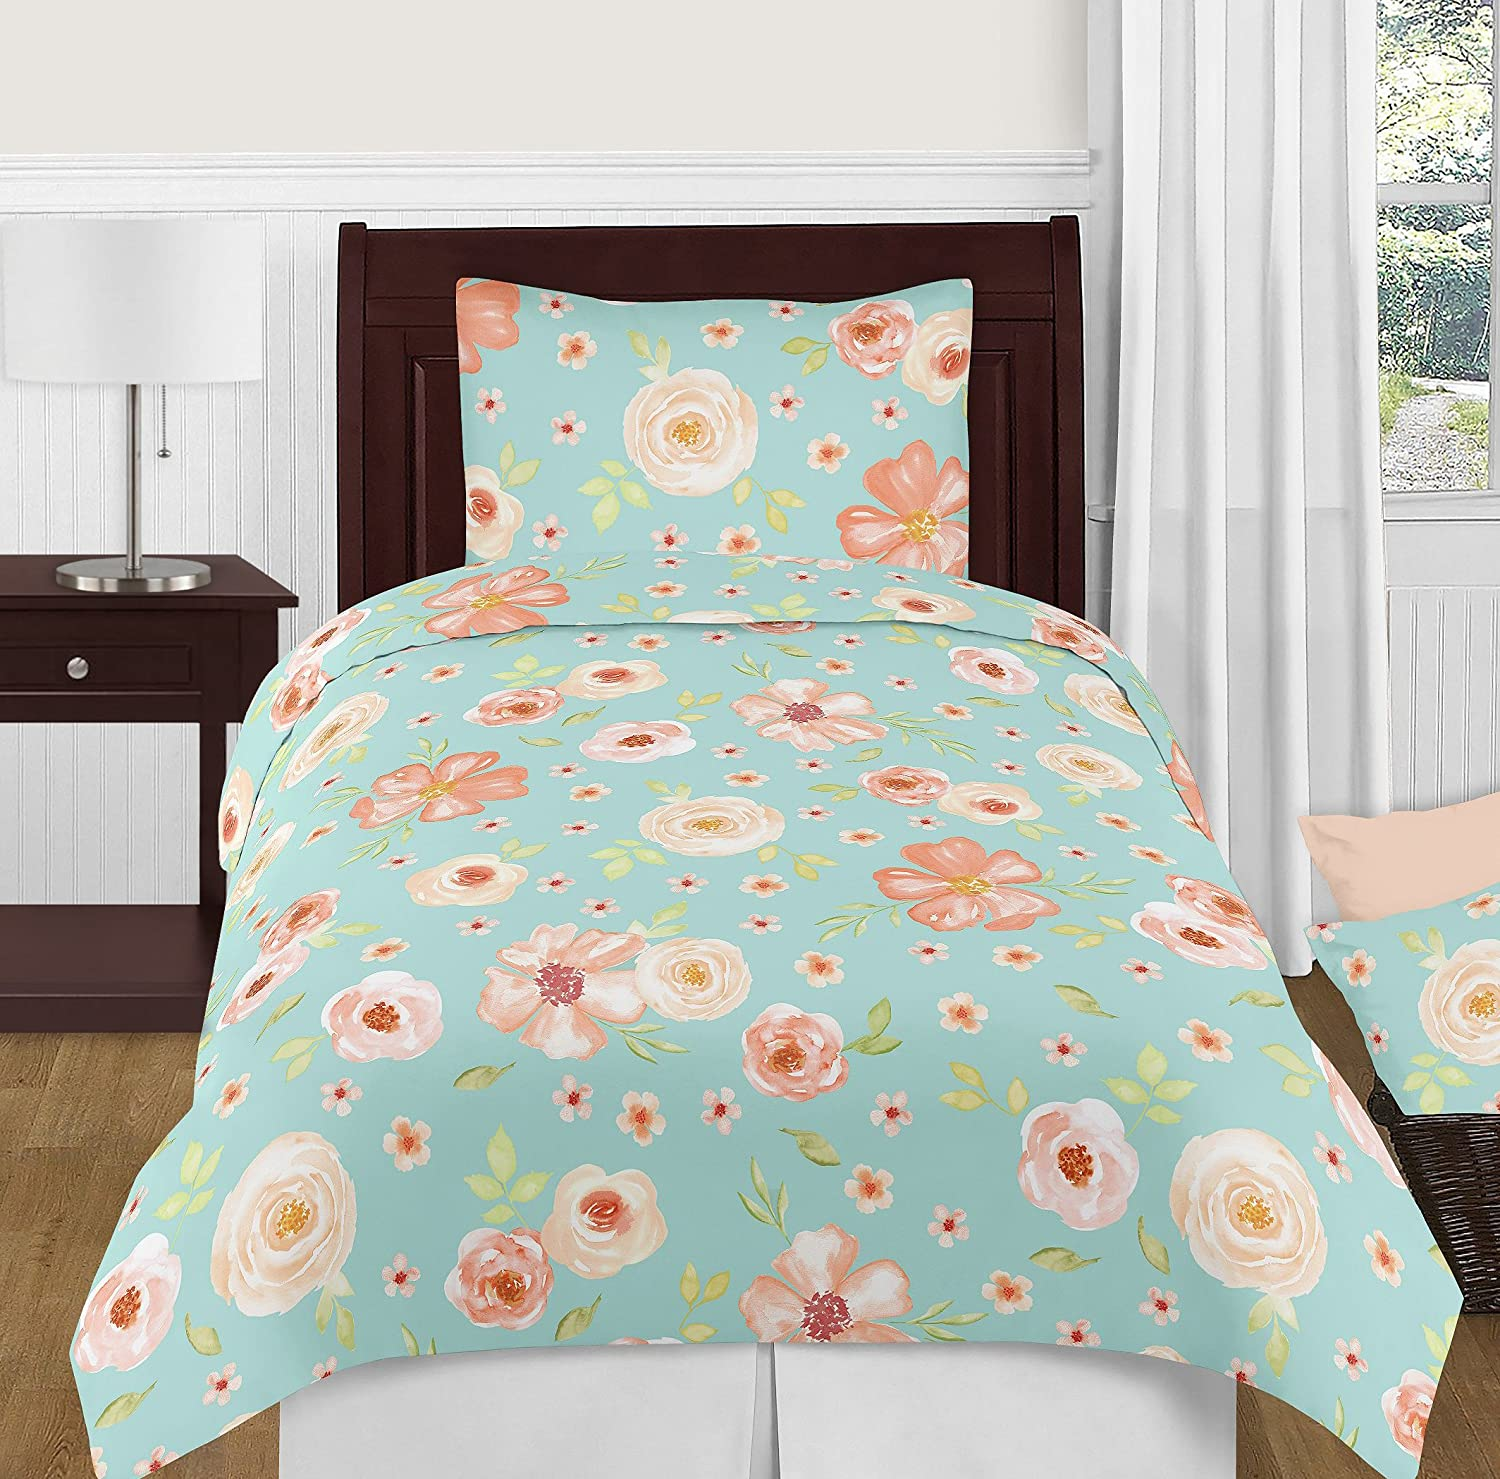 Pink Rose Flower 3 piece set Sweet Jojo Designs Turquoise and Peach Twin Sheet Set for Watercolor Floral Collection